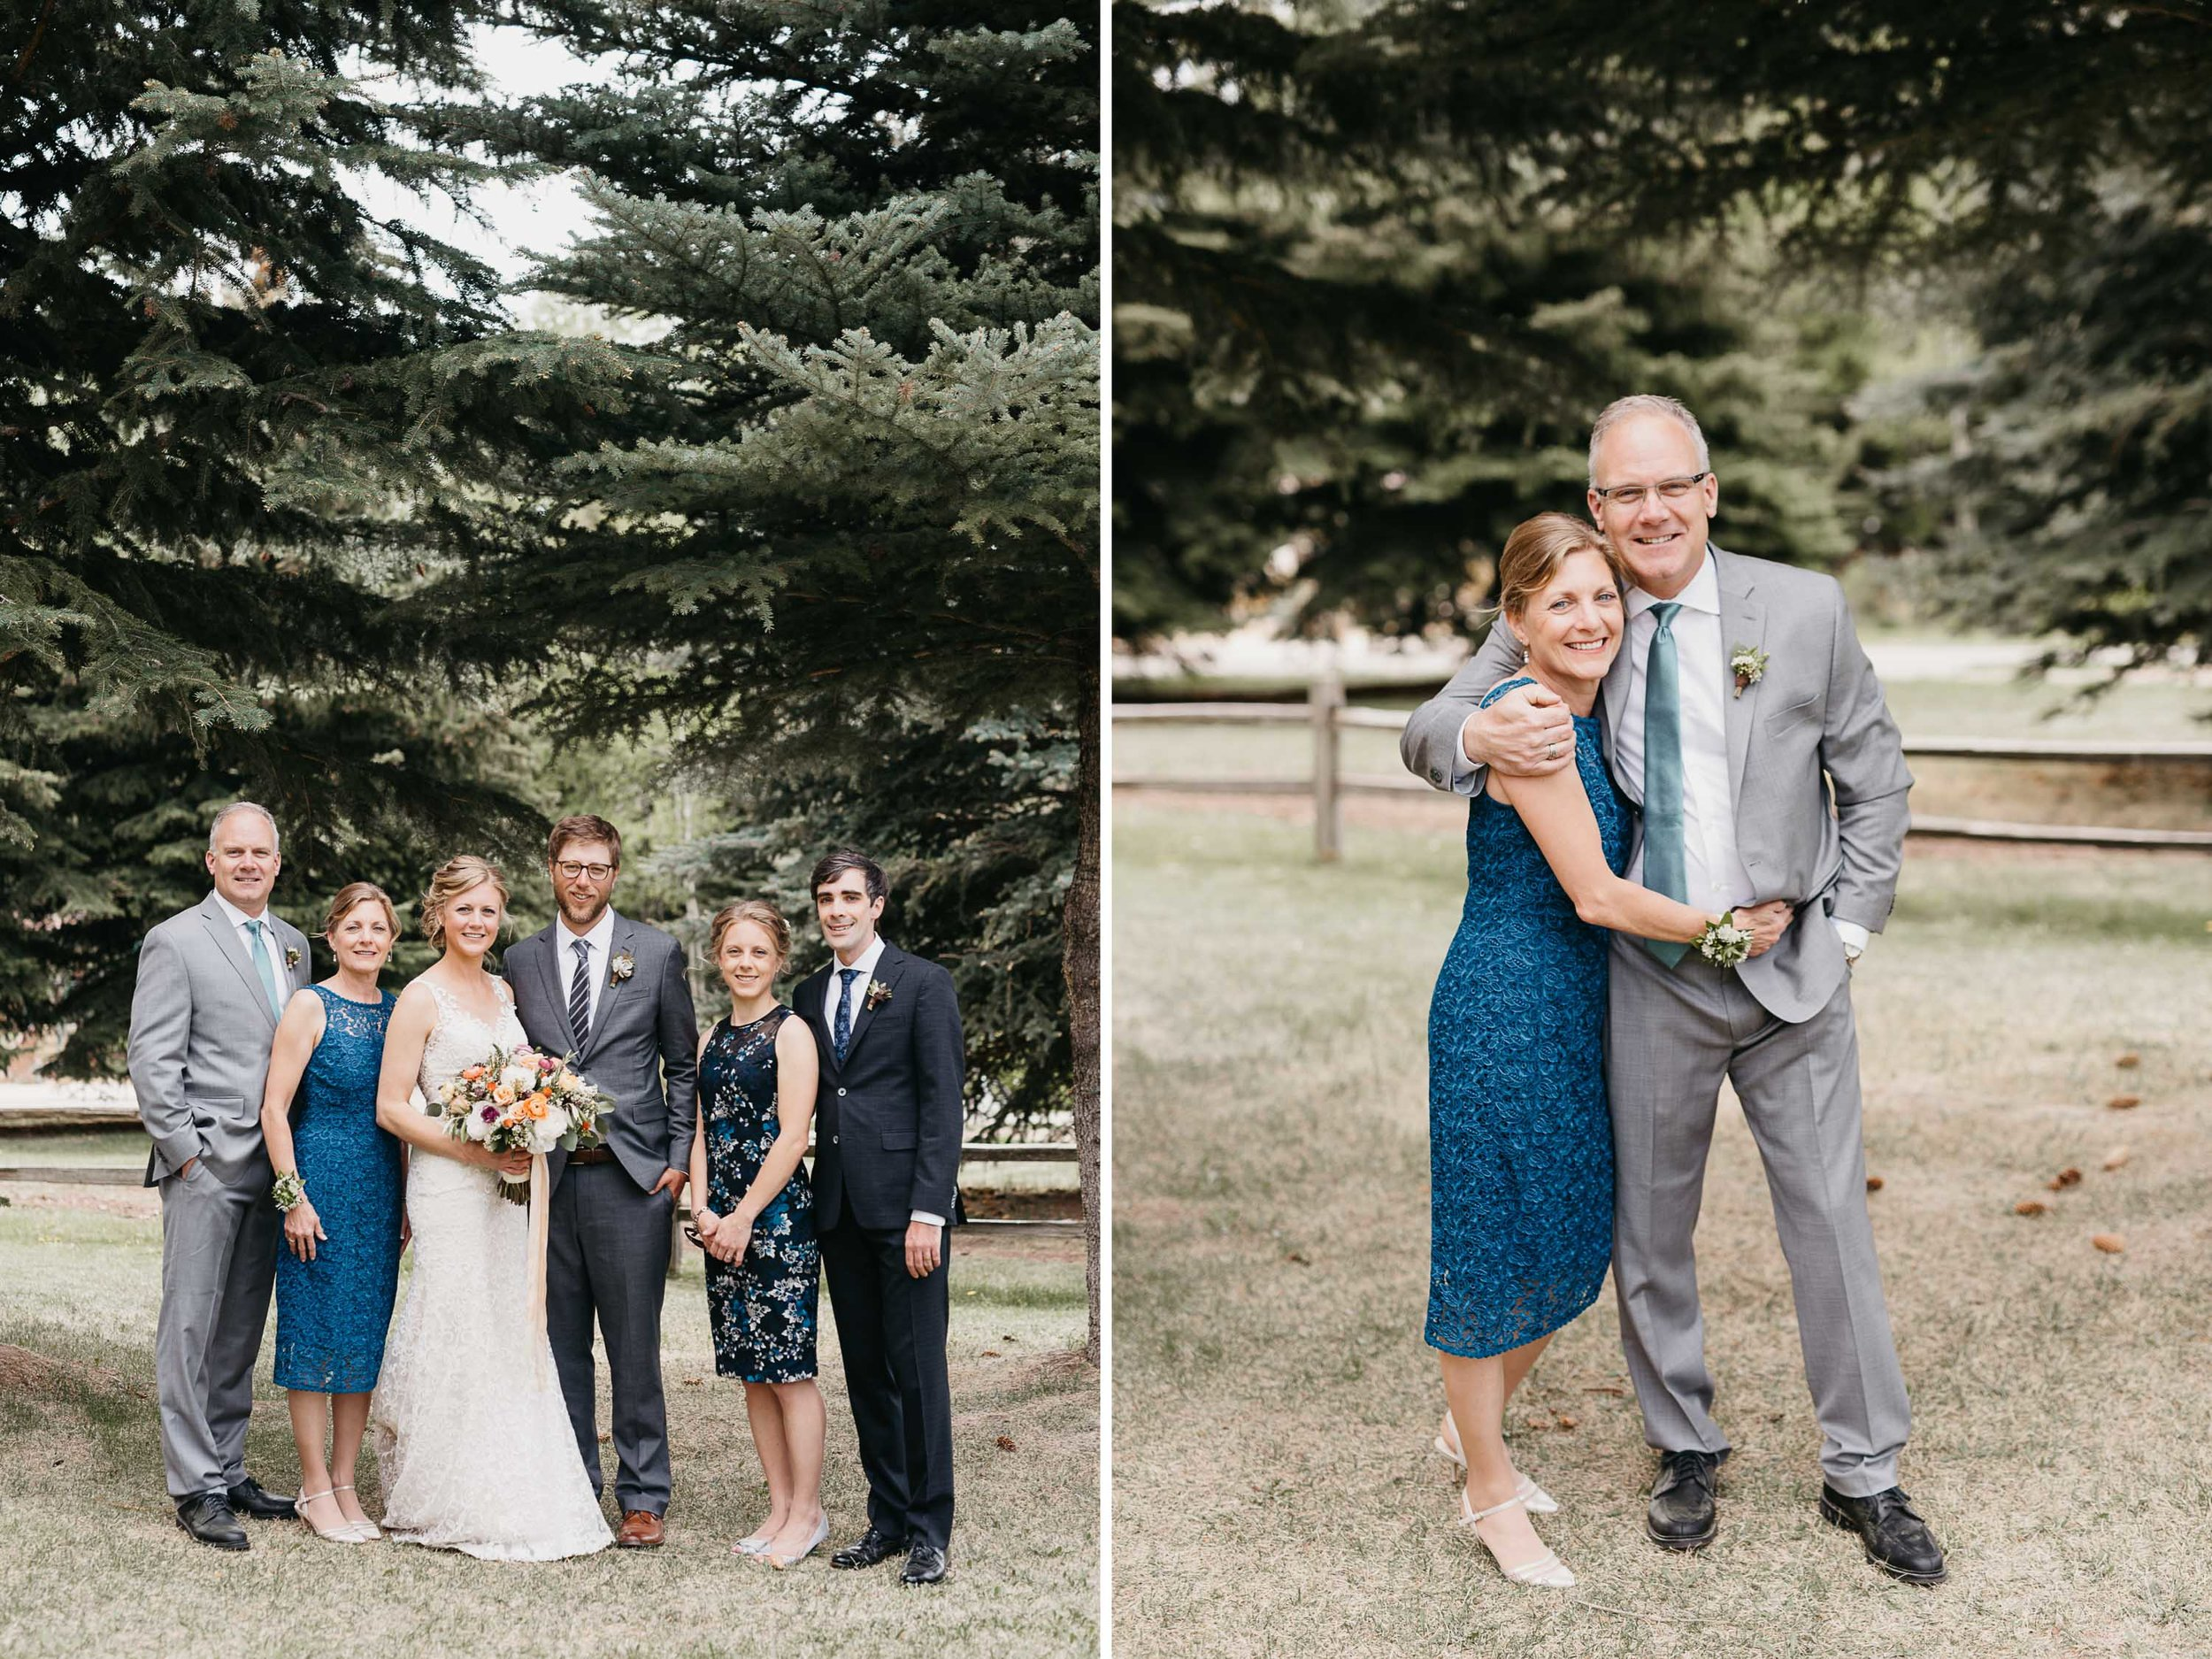 Colorado-Wedding-Photographer-41.jpg